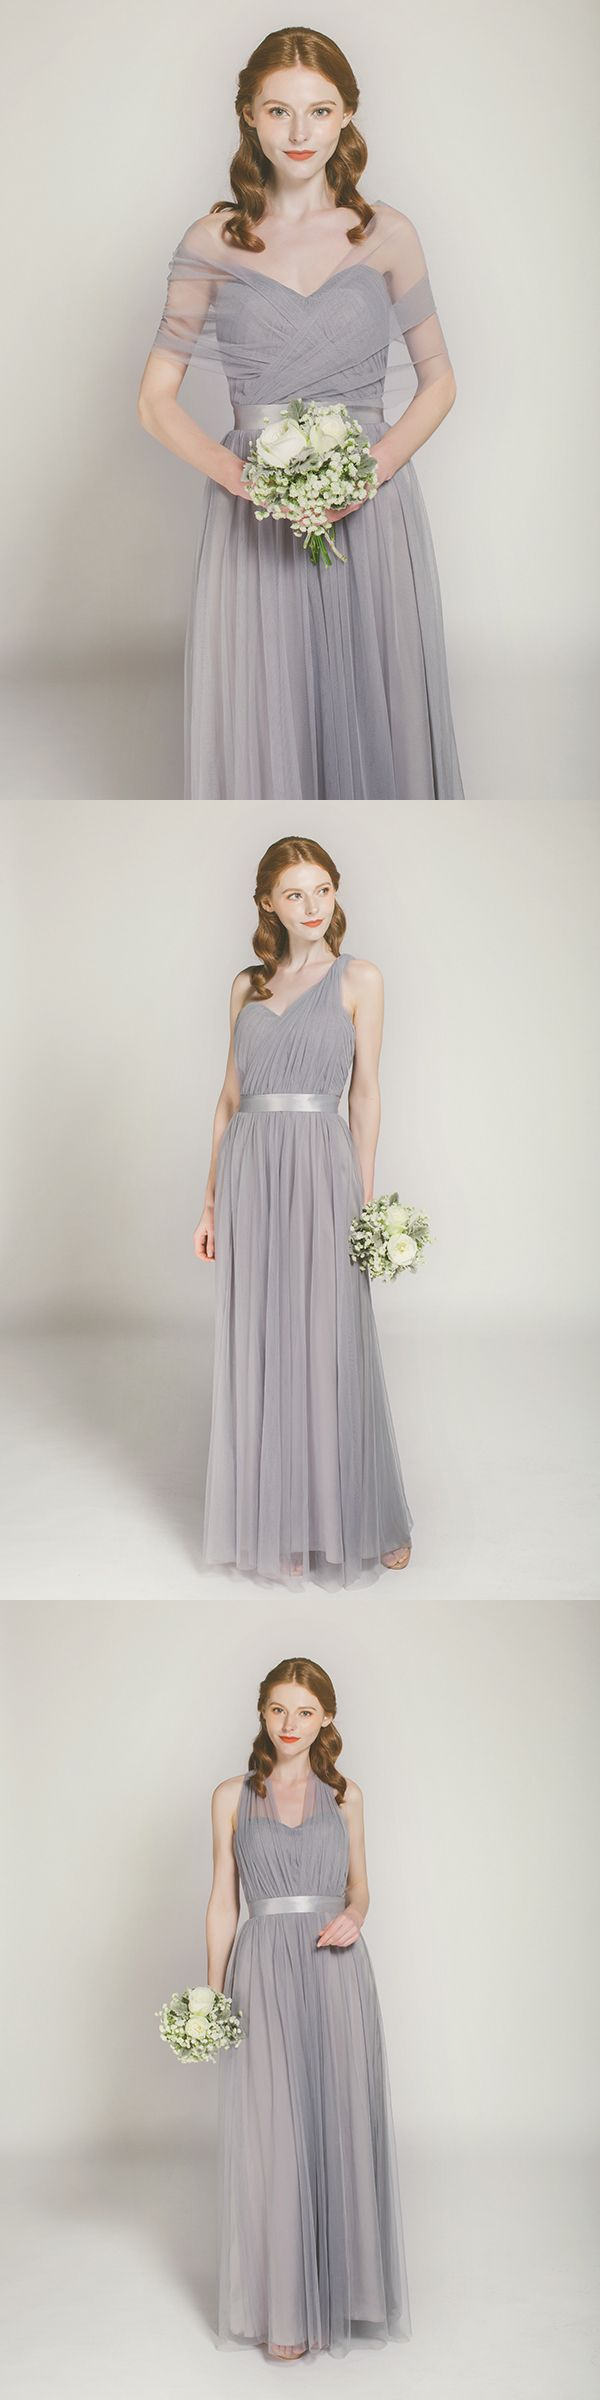 121 best bridesmaid dresses images on pinterest bridal parties convertible long tulle grey bridesmaid dress ombrellifo Gallery